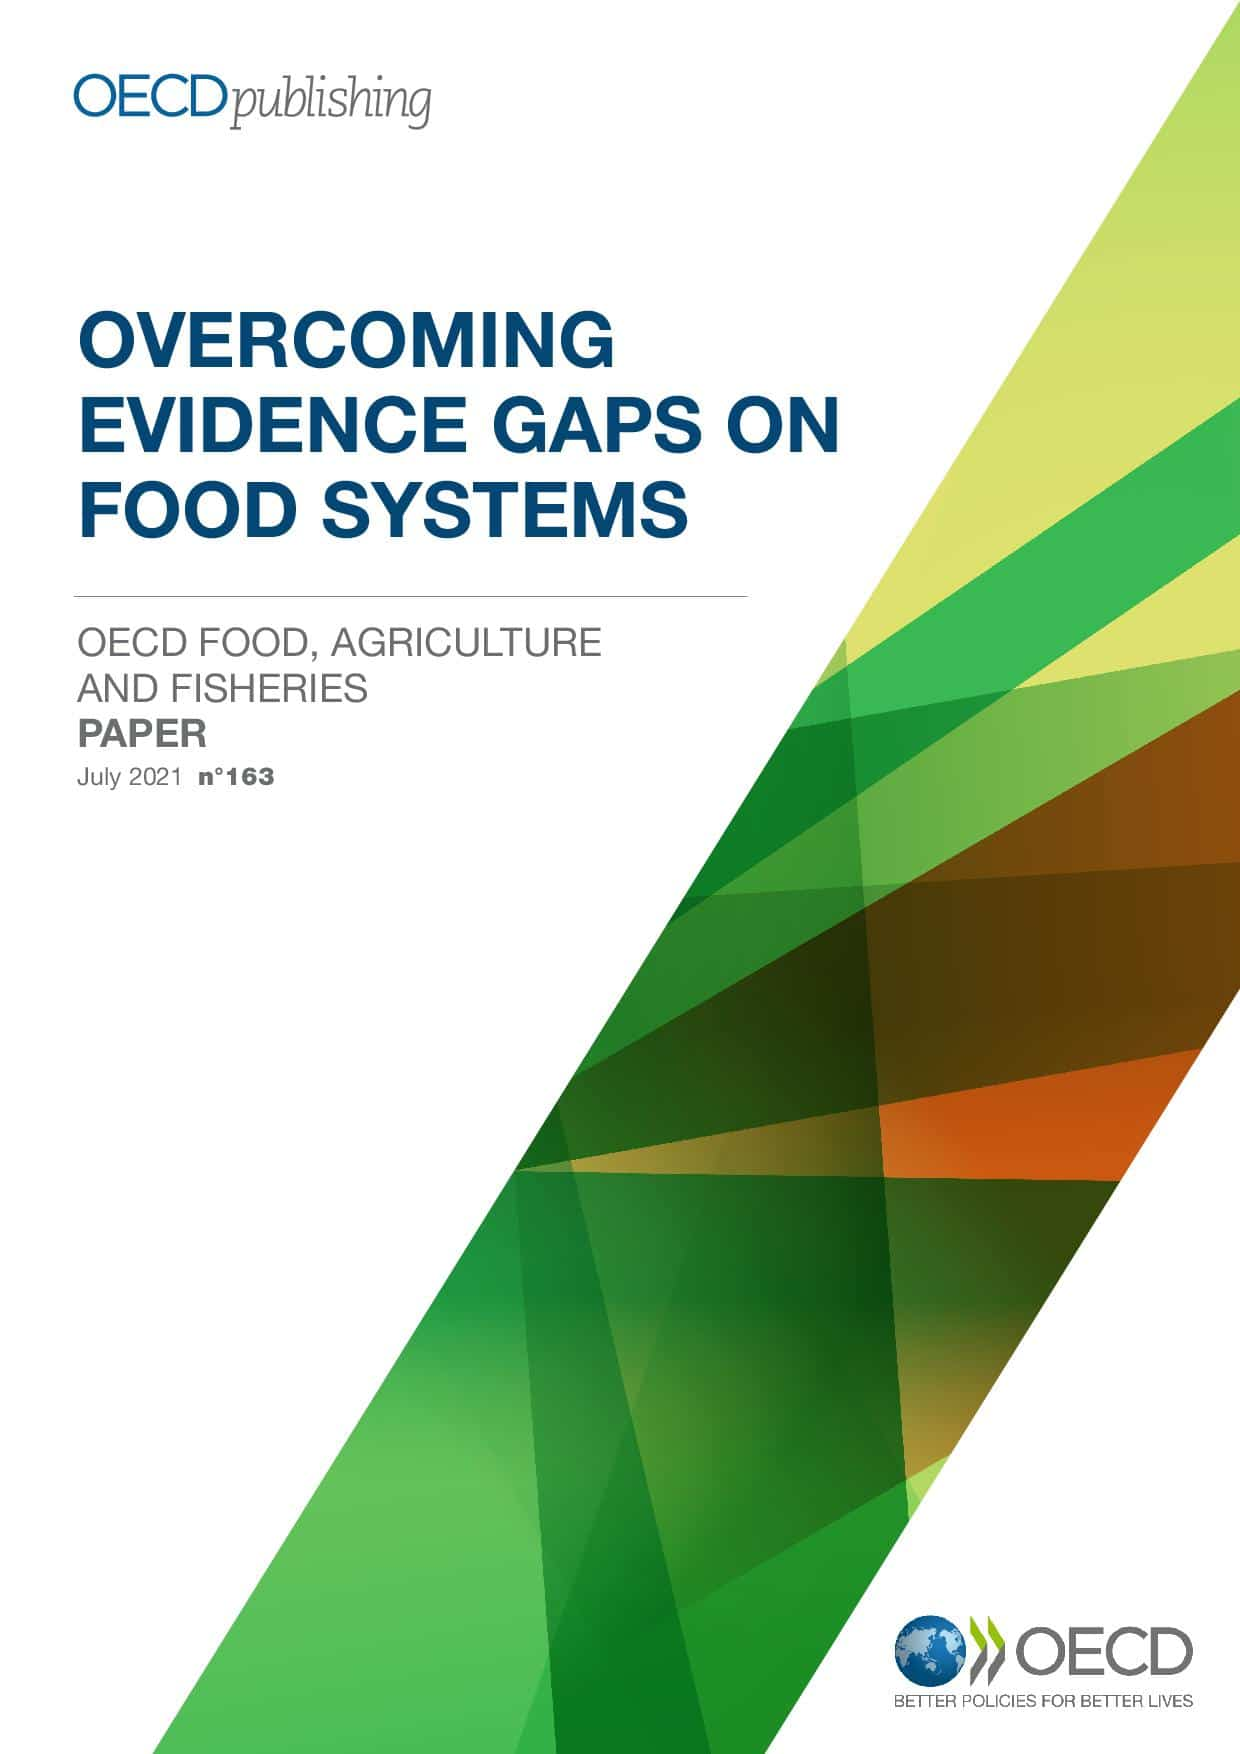 Overcoming evidence gaps on food systems